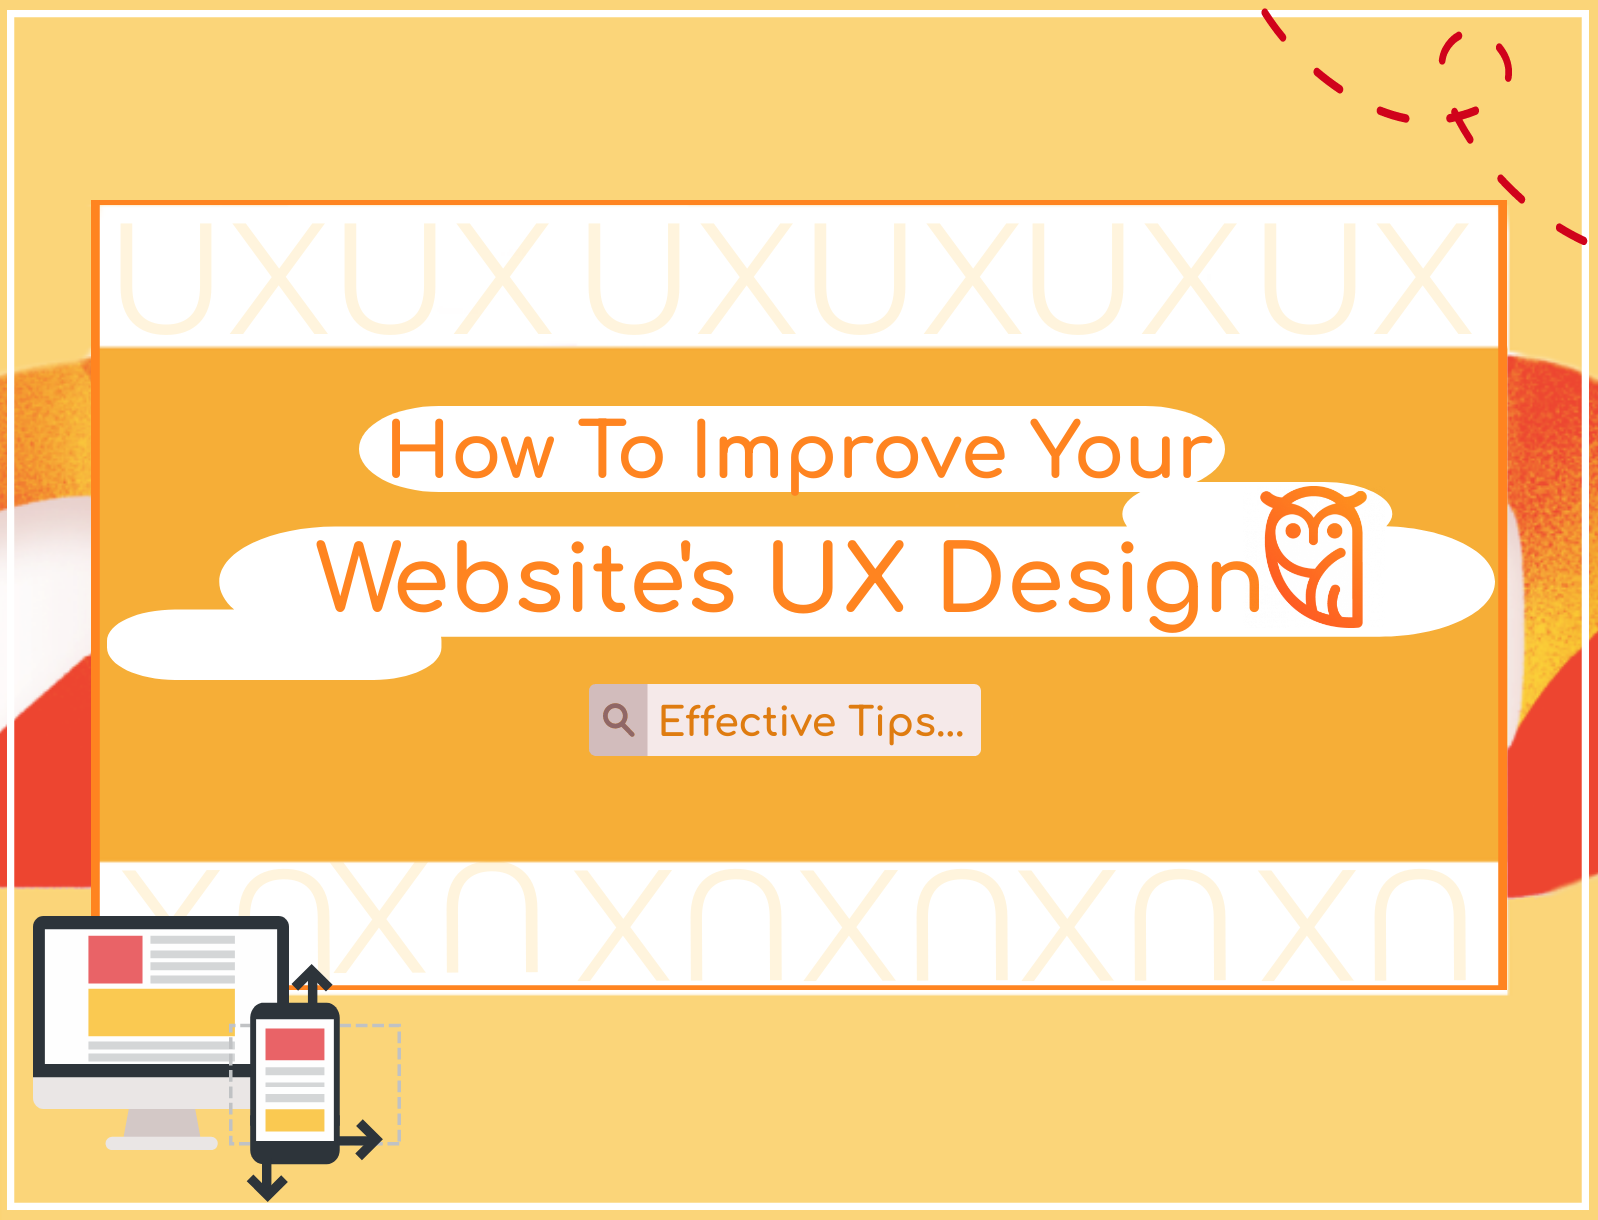 004how to improve your website's UX effective tips